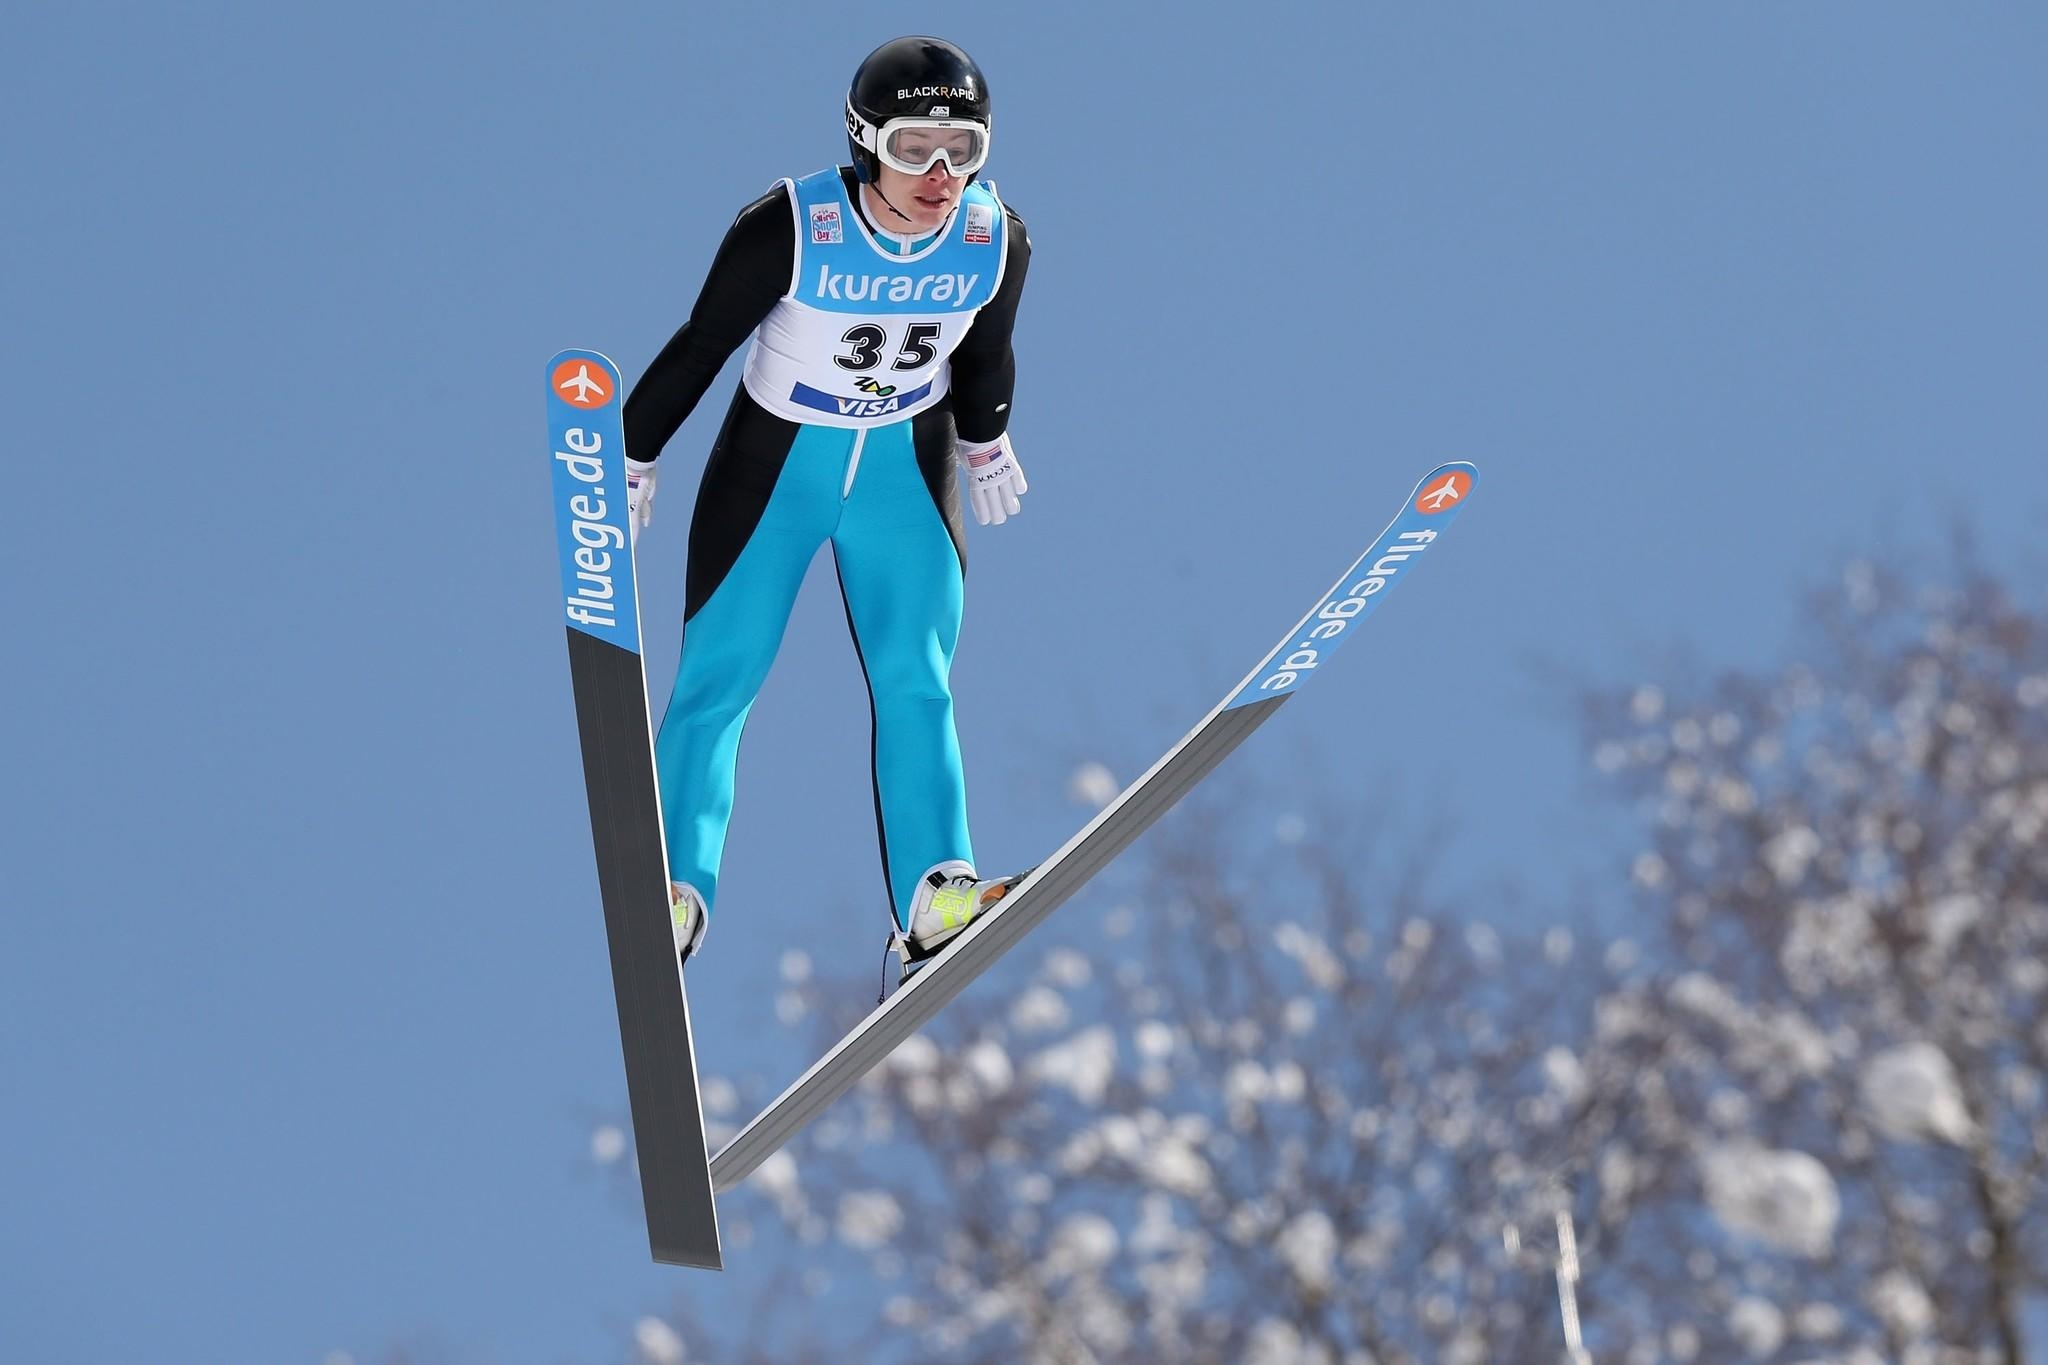 Lindsey Van competes in the Normal Hill Individual 1st round during the FIS Women's Ski Jumping World Cup Zao at Zao Jump Stadium.